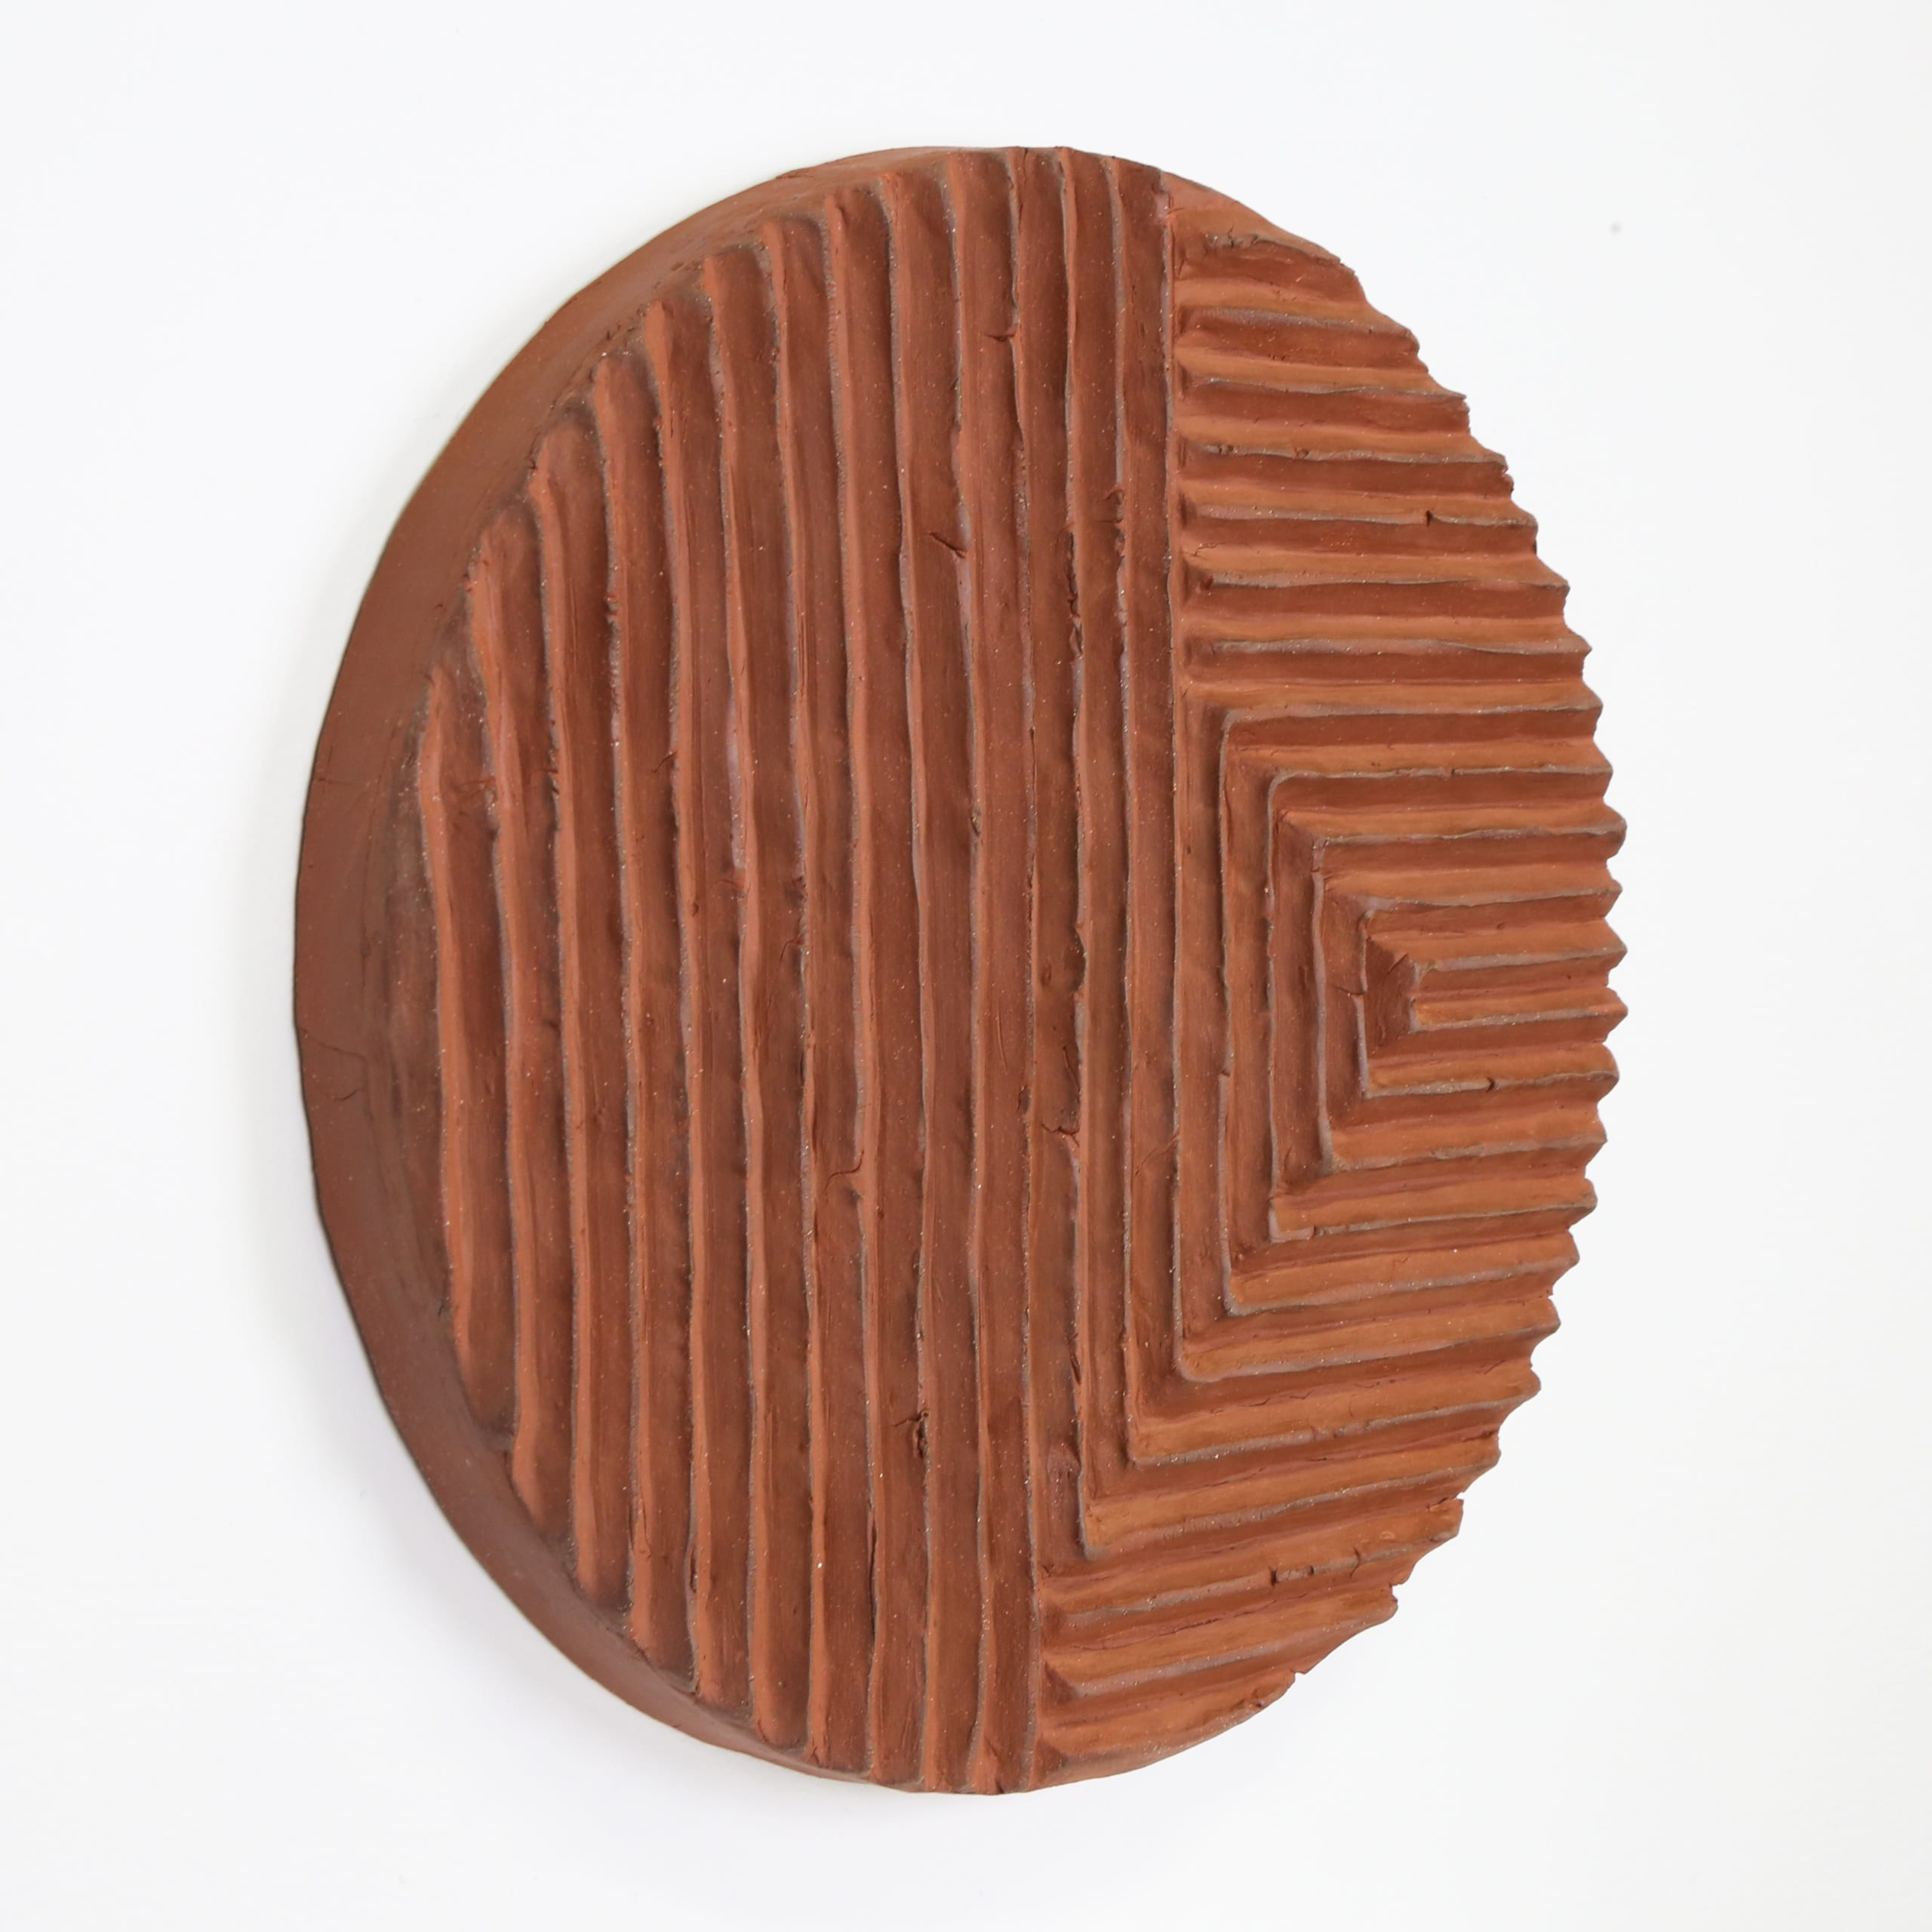 Color photograph with an oblique view of a terra-cotta disk with a series of raised, parallel lines sculpted onto its front, highlighting the texture of the clay and the depth of the ridges. The lines run up and down vertically on the left, and toward the object's right the lines are horizontal. The object appears to be unglazed.